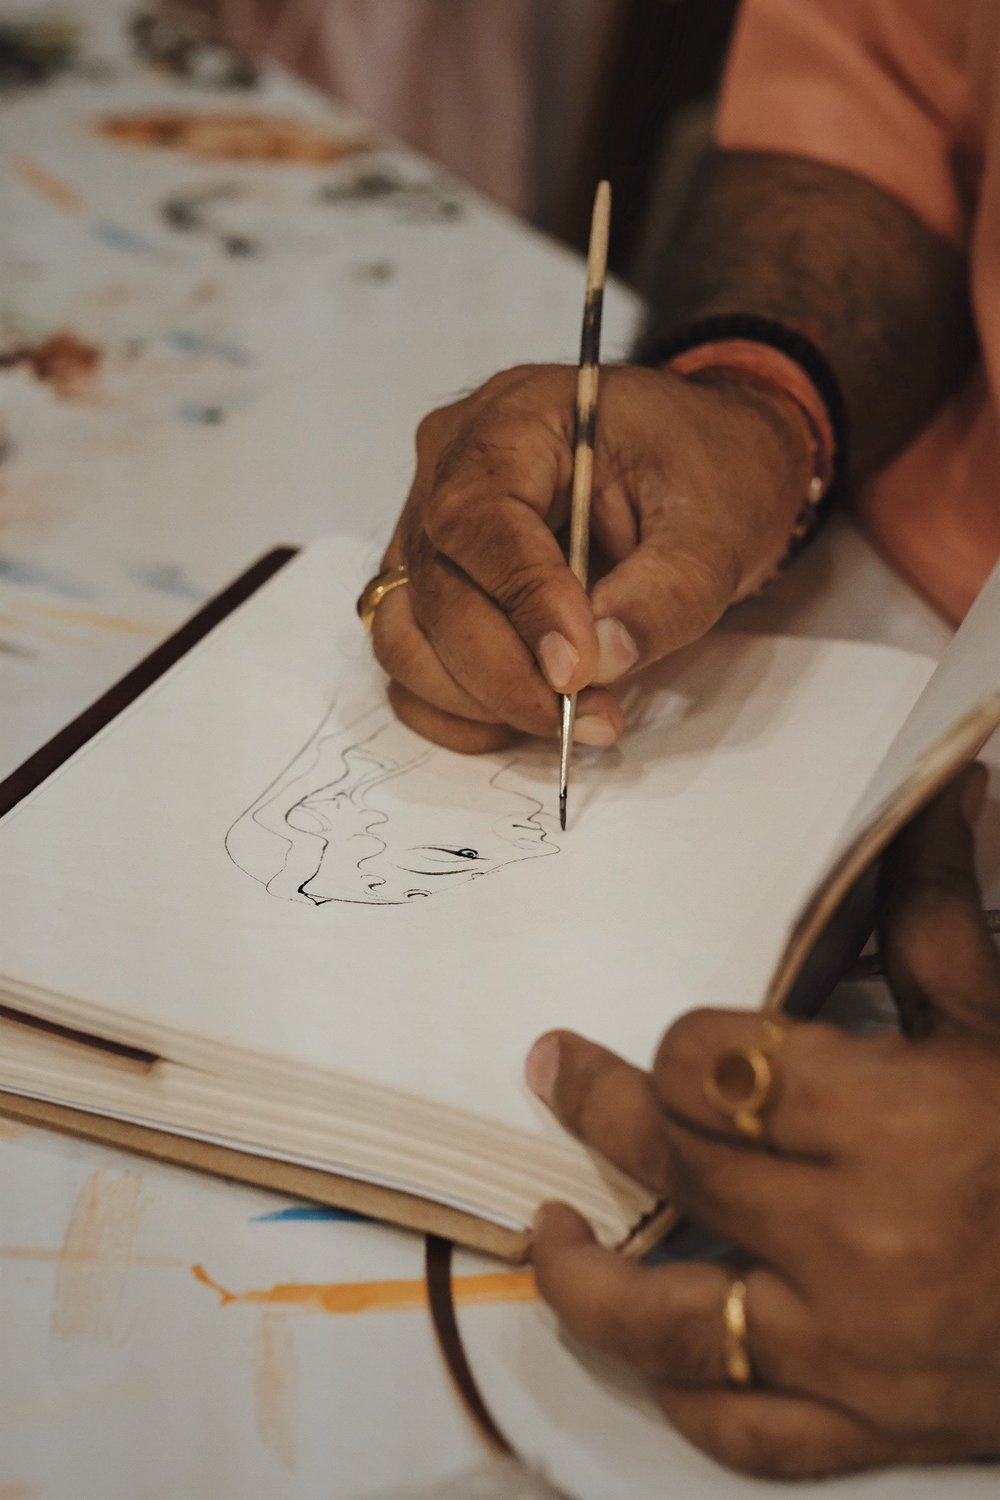 Sri Ramu Ramdev, demonstrating freehand linework with the Indian fine-line brush. Photography by Precious LaPlante.